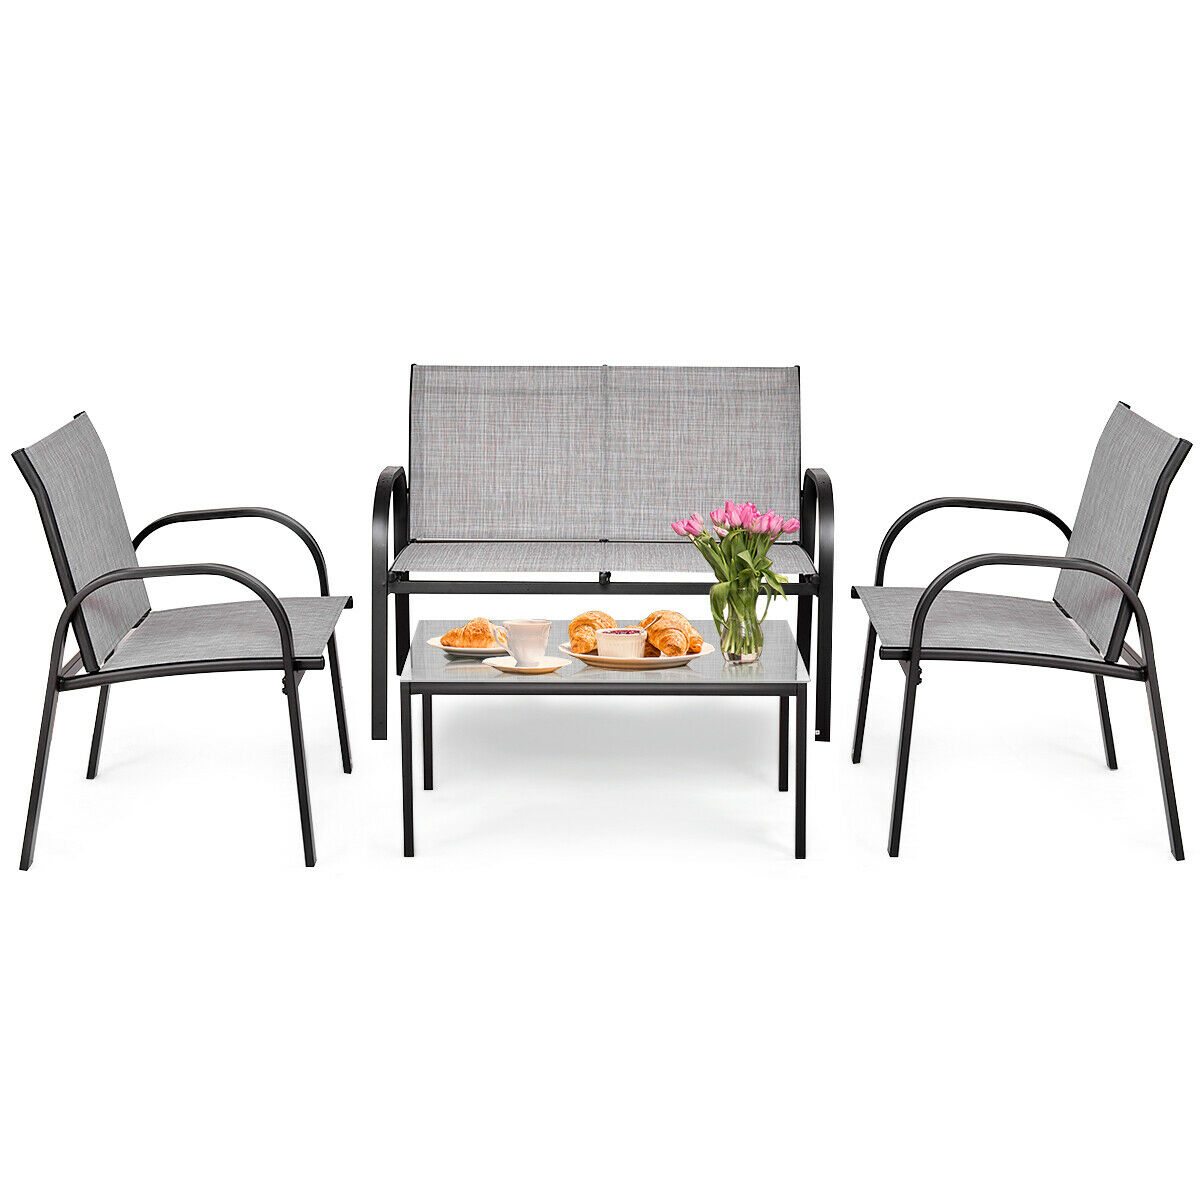 Costway 4 PCS Patio Furniture Set Sofa Coffee Table Steel Frame Garden Deck Gray